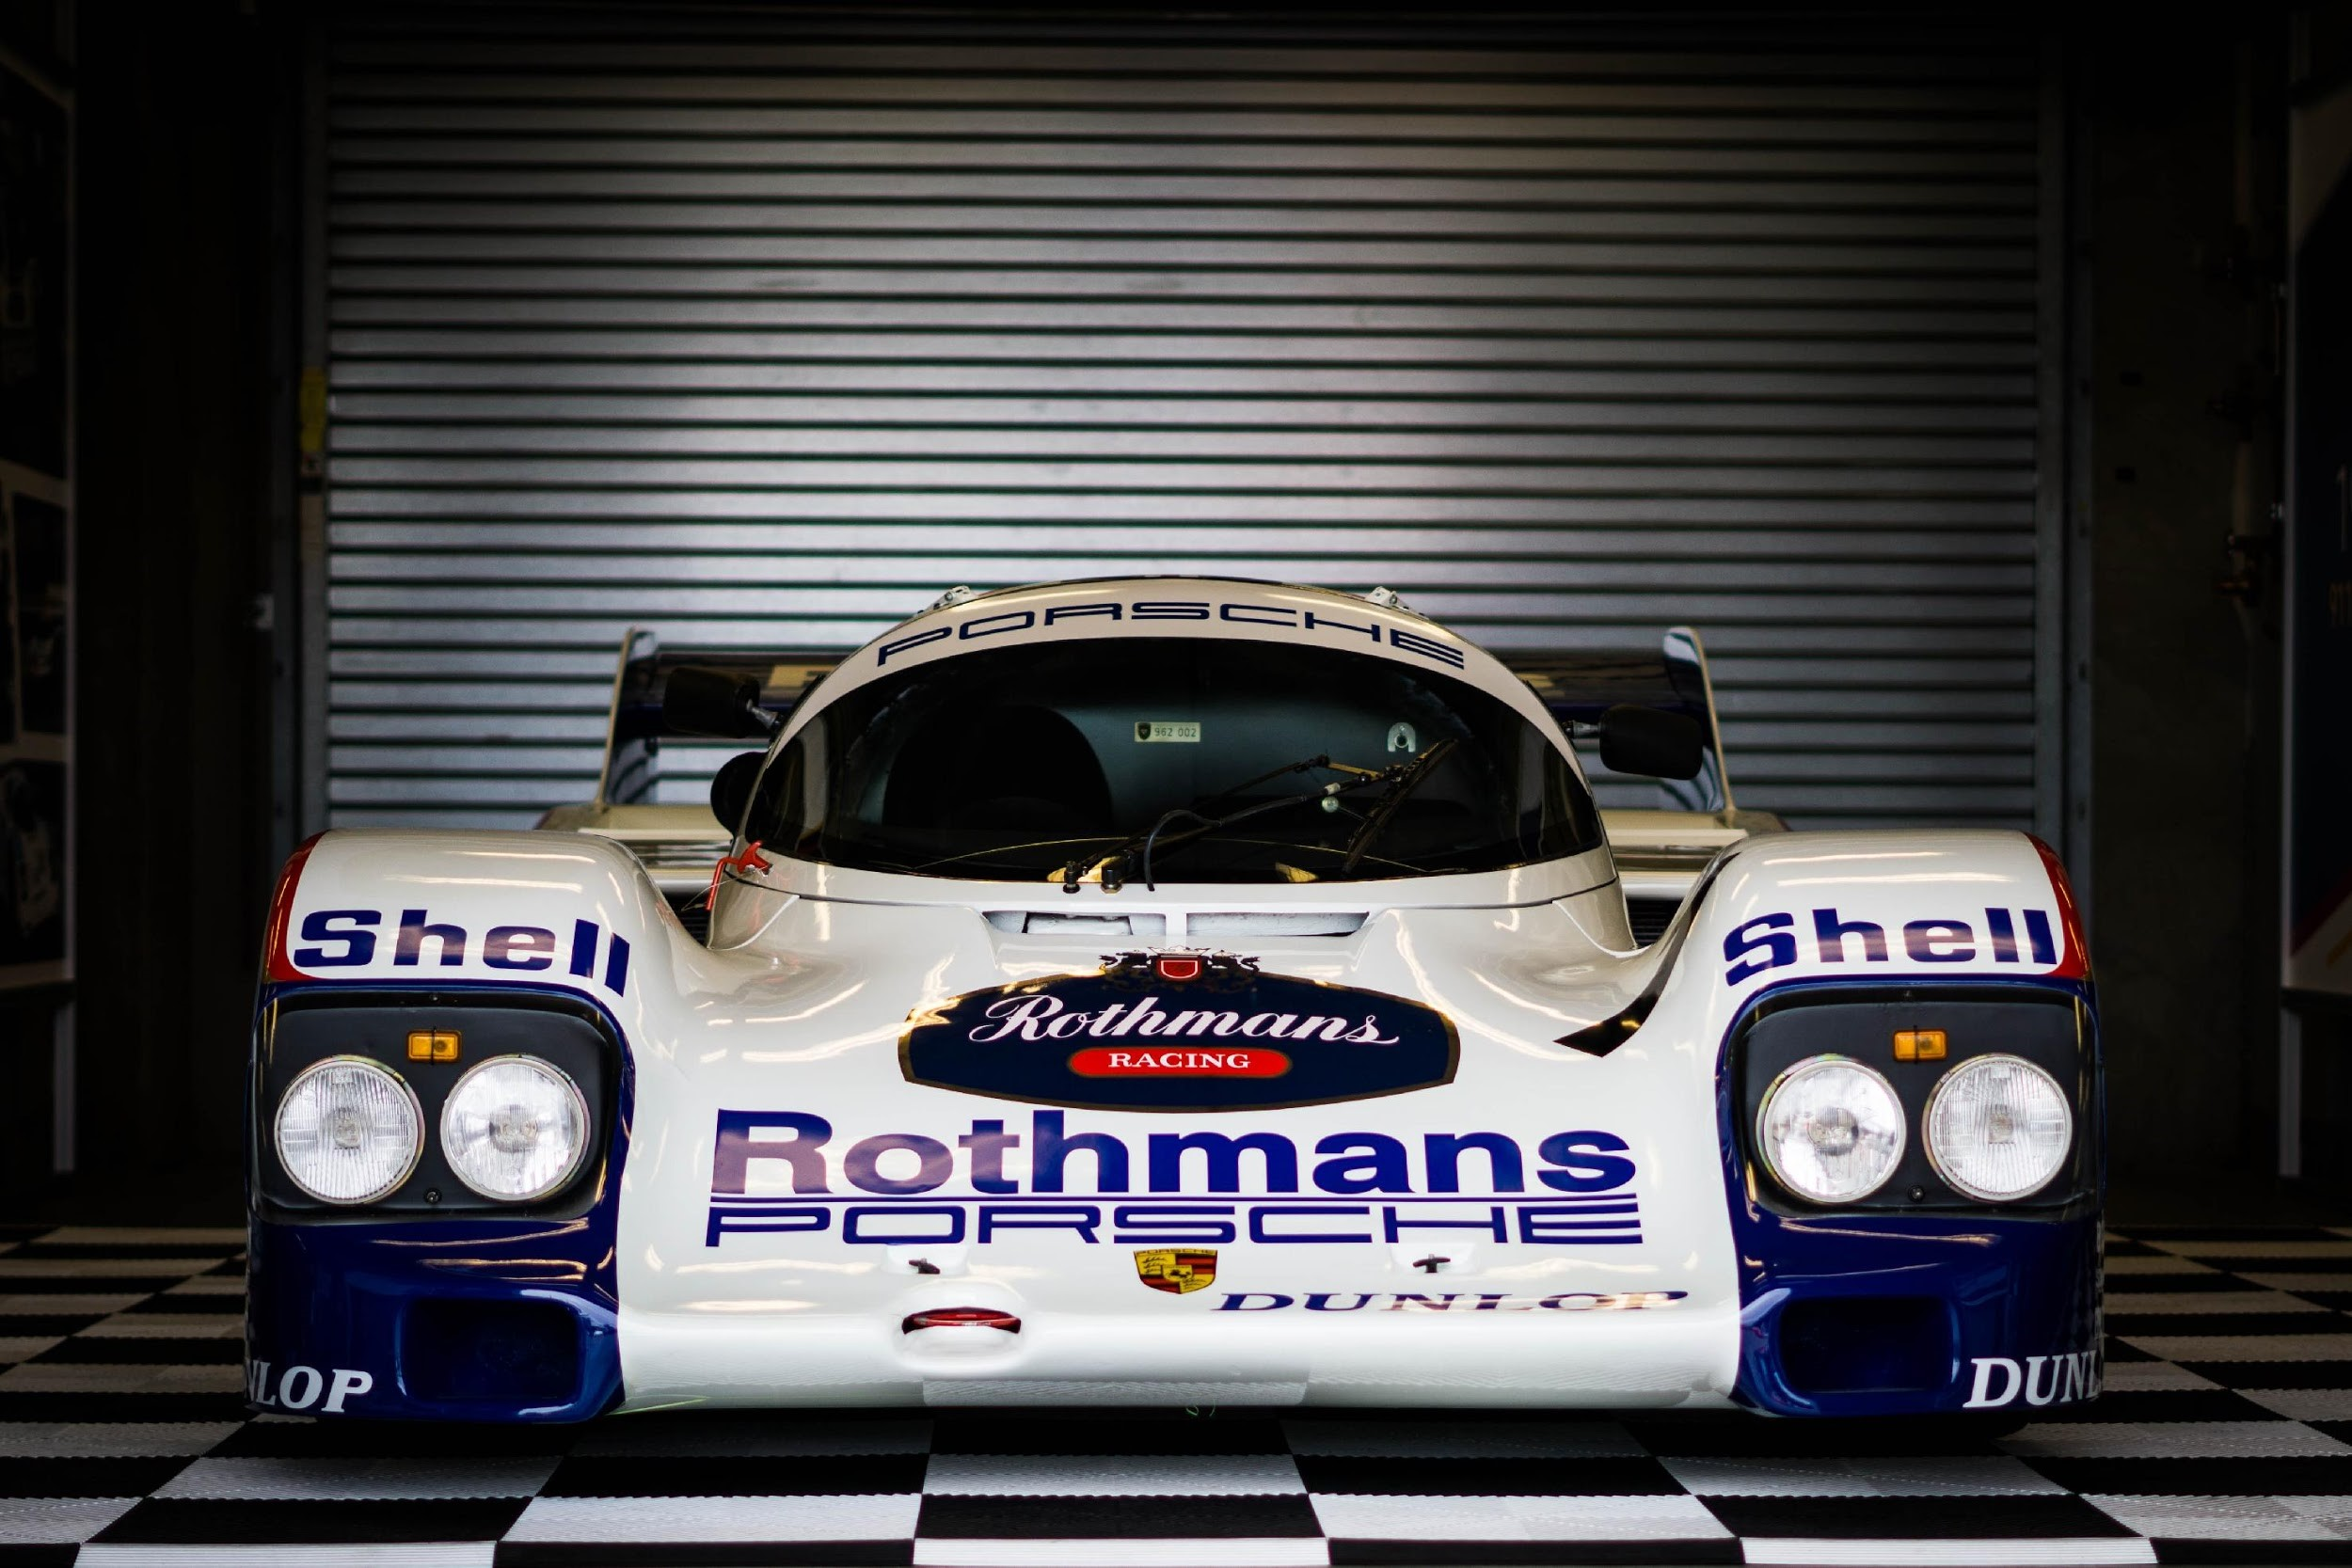 Among the slew of 962s on the property during Rennsport, this Rothman-liveried road racer may be the most iconic. As a part of the Porsche paddock, it was on display for the entirety of Rennsport. During the event we sat down with famed racer Bobby Rahal. His favorite race car? The 962.